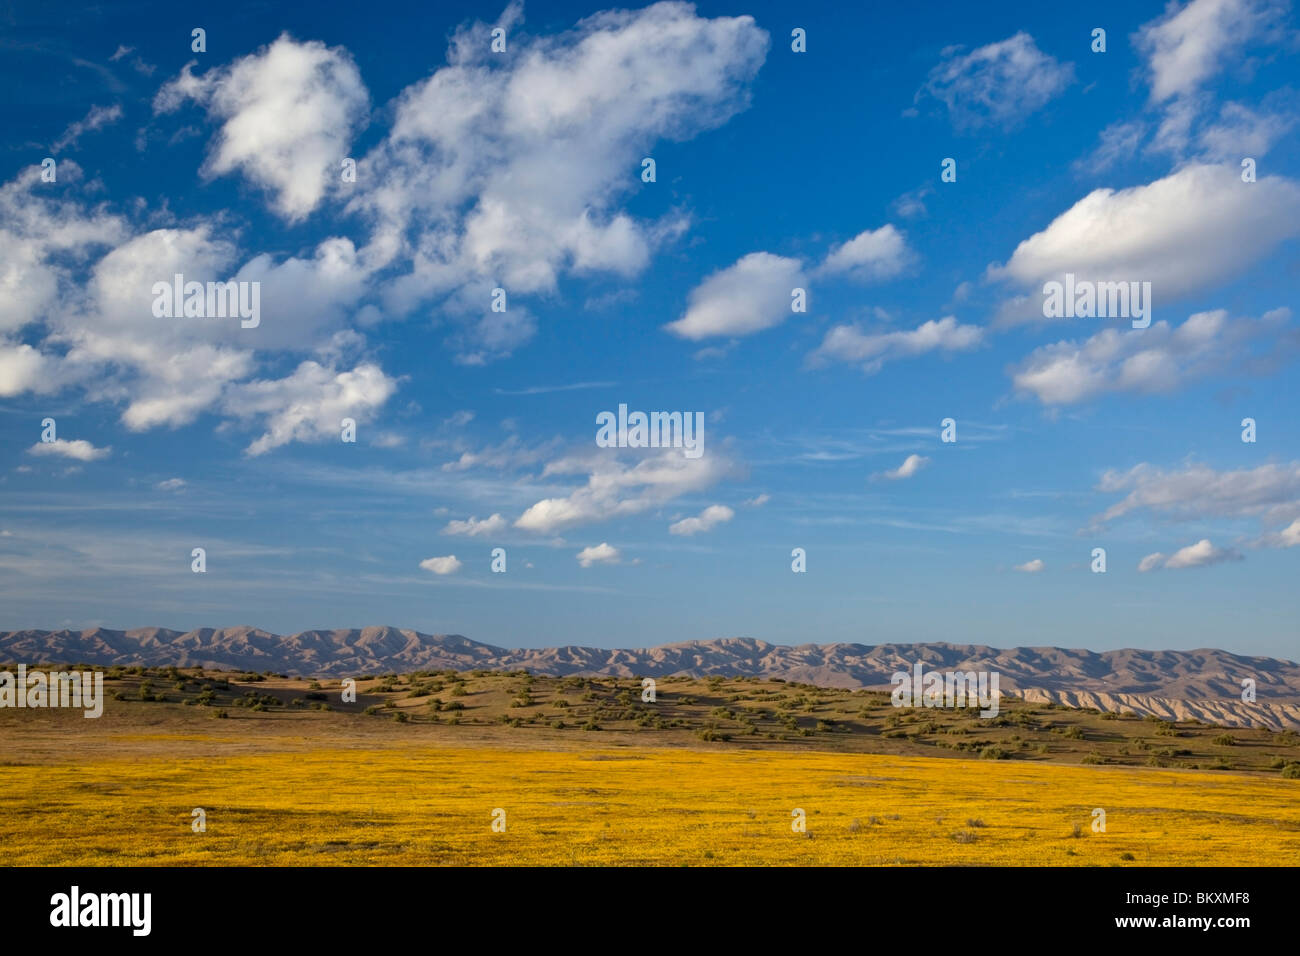 Carrizo Plain National Monument, CA: Evening clouds over the distant hills of the Temblor range with goldfields - Stock Image